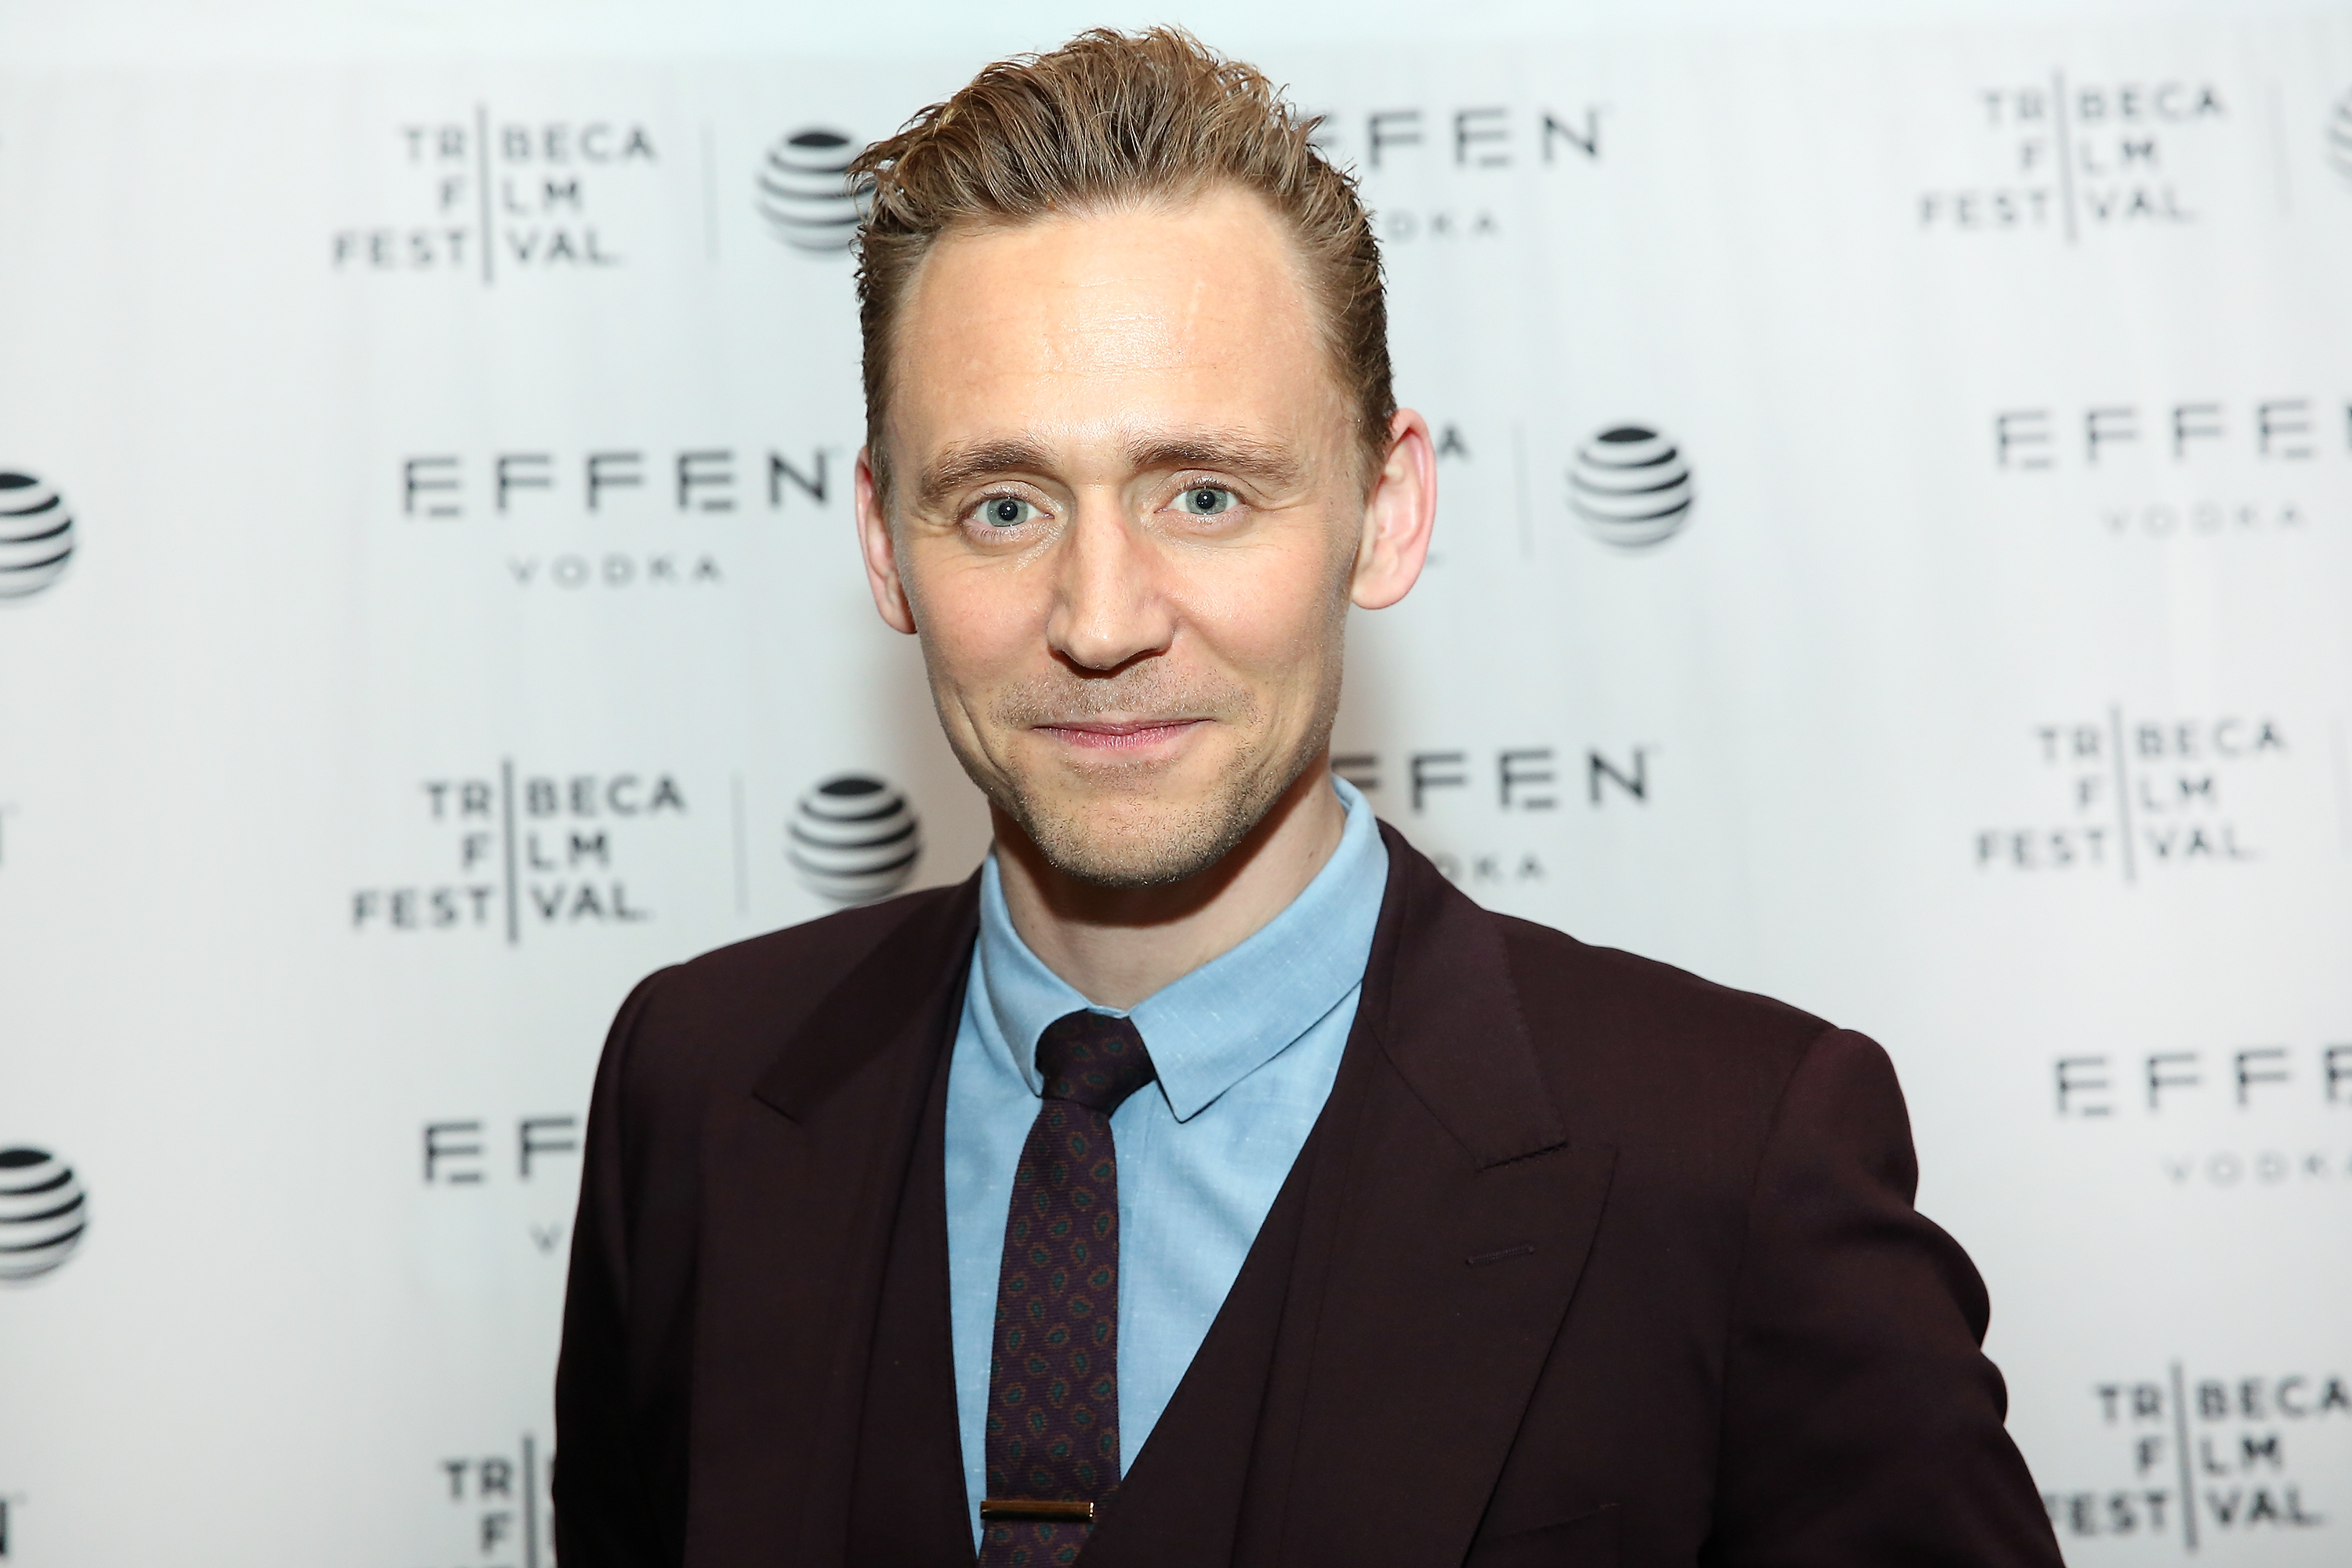 Tom Hiddleston says friends and family members have helped him survive the pressures of fame (Picture: Getty Imagesl)